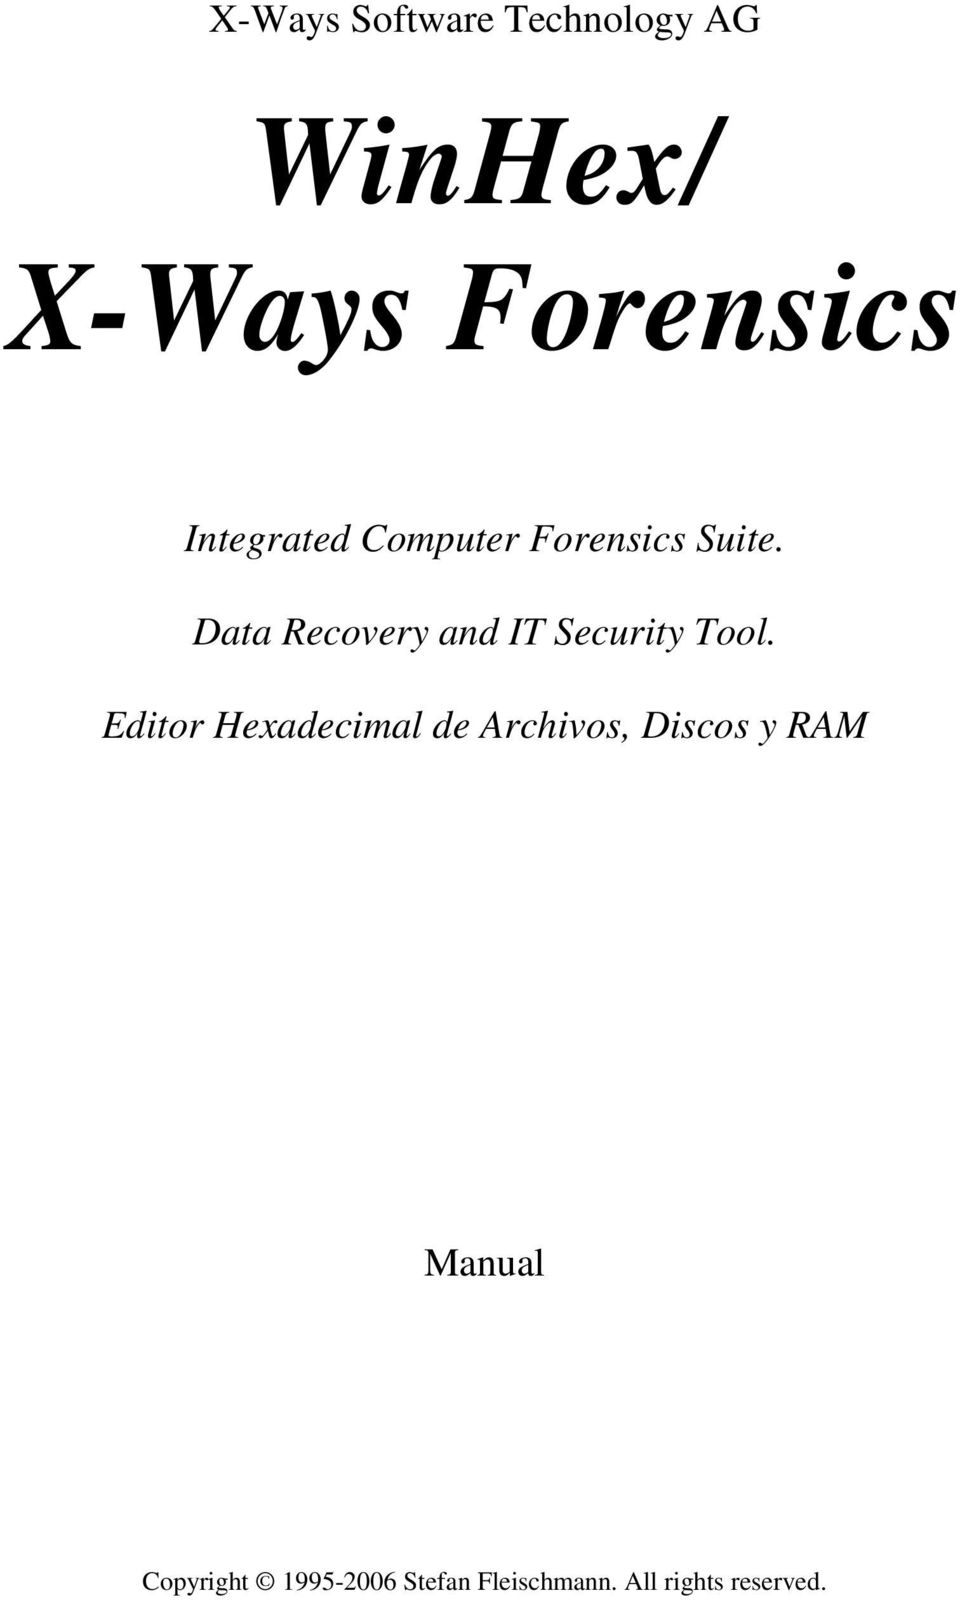 Data Recovery and IT Security Tool.